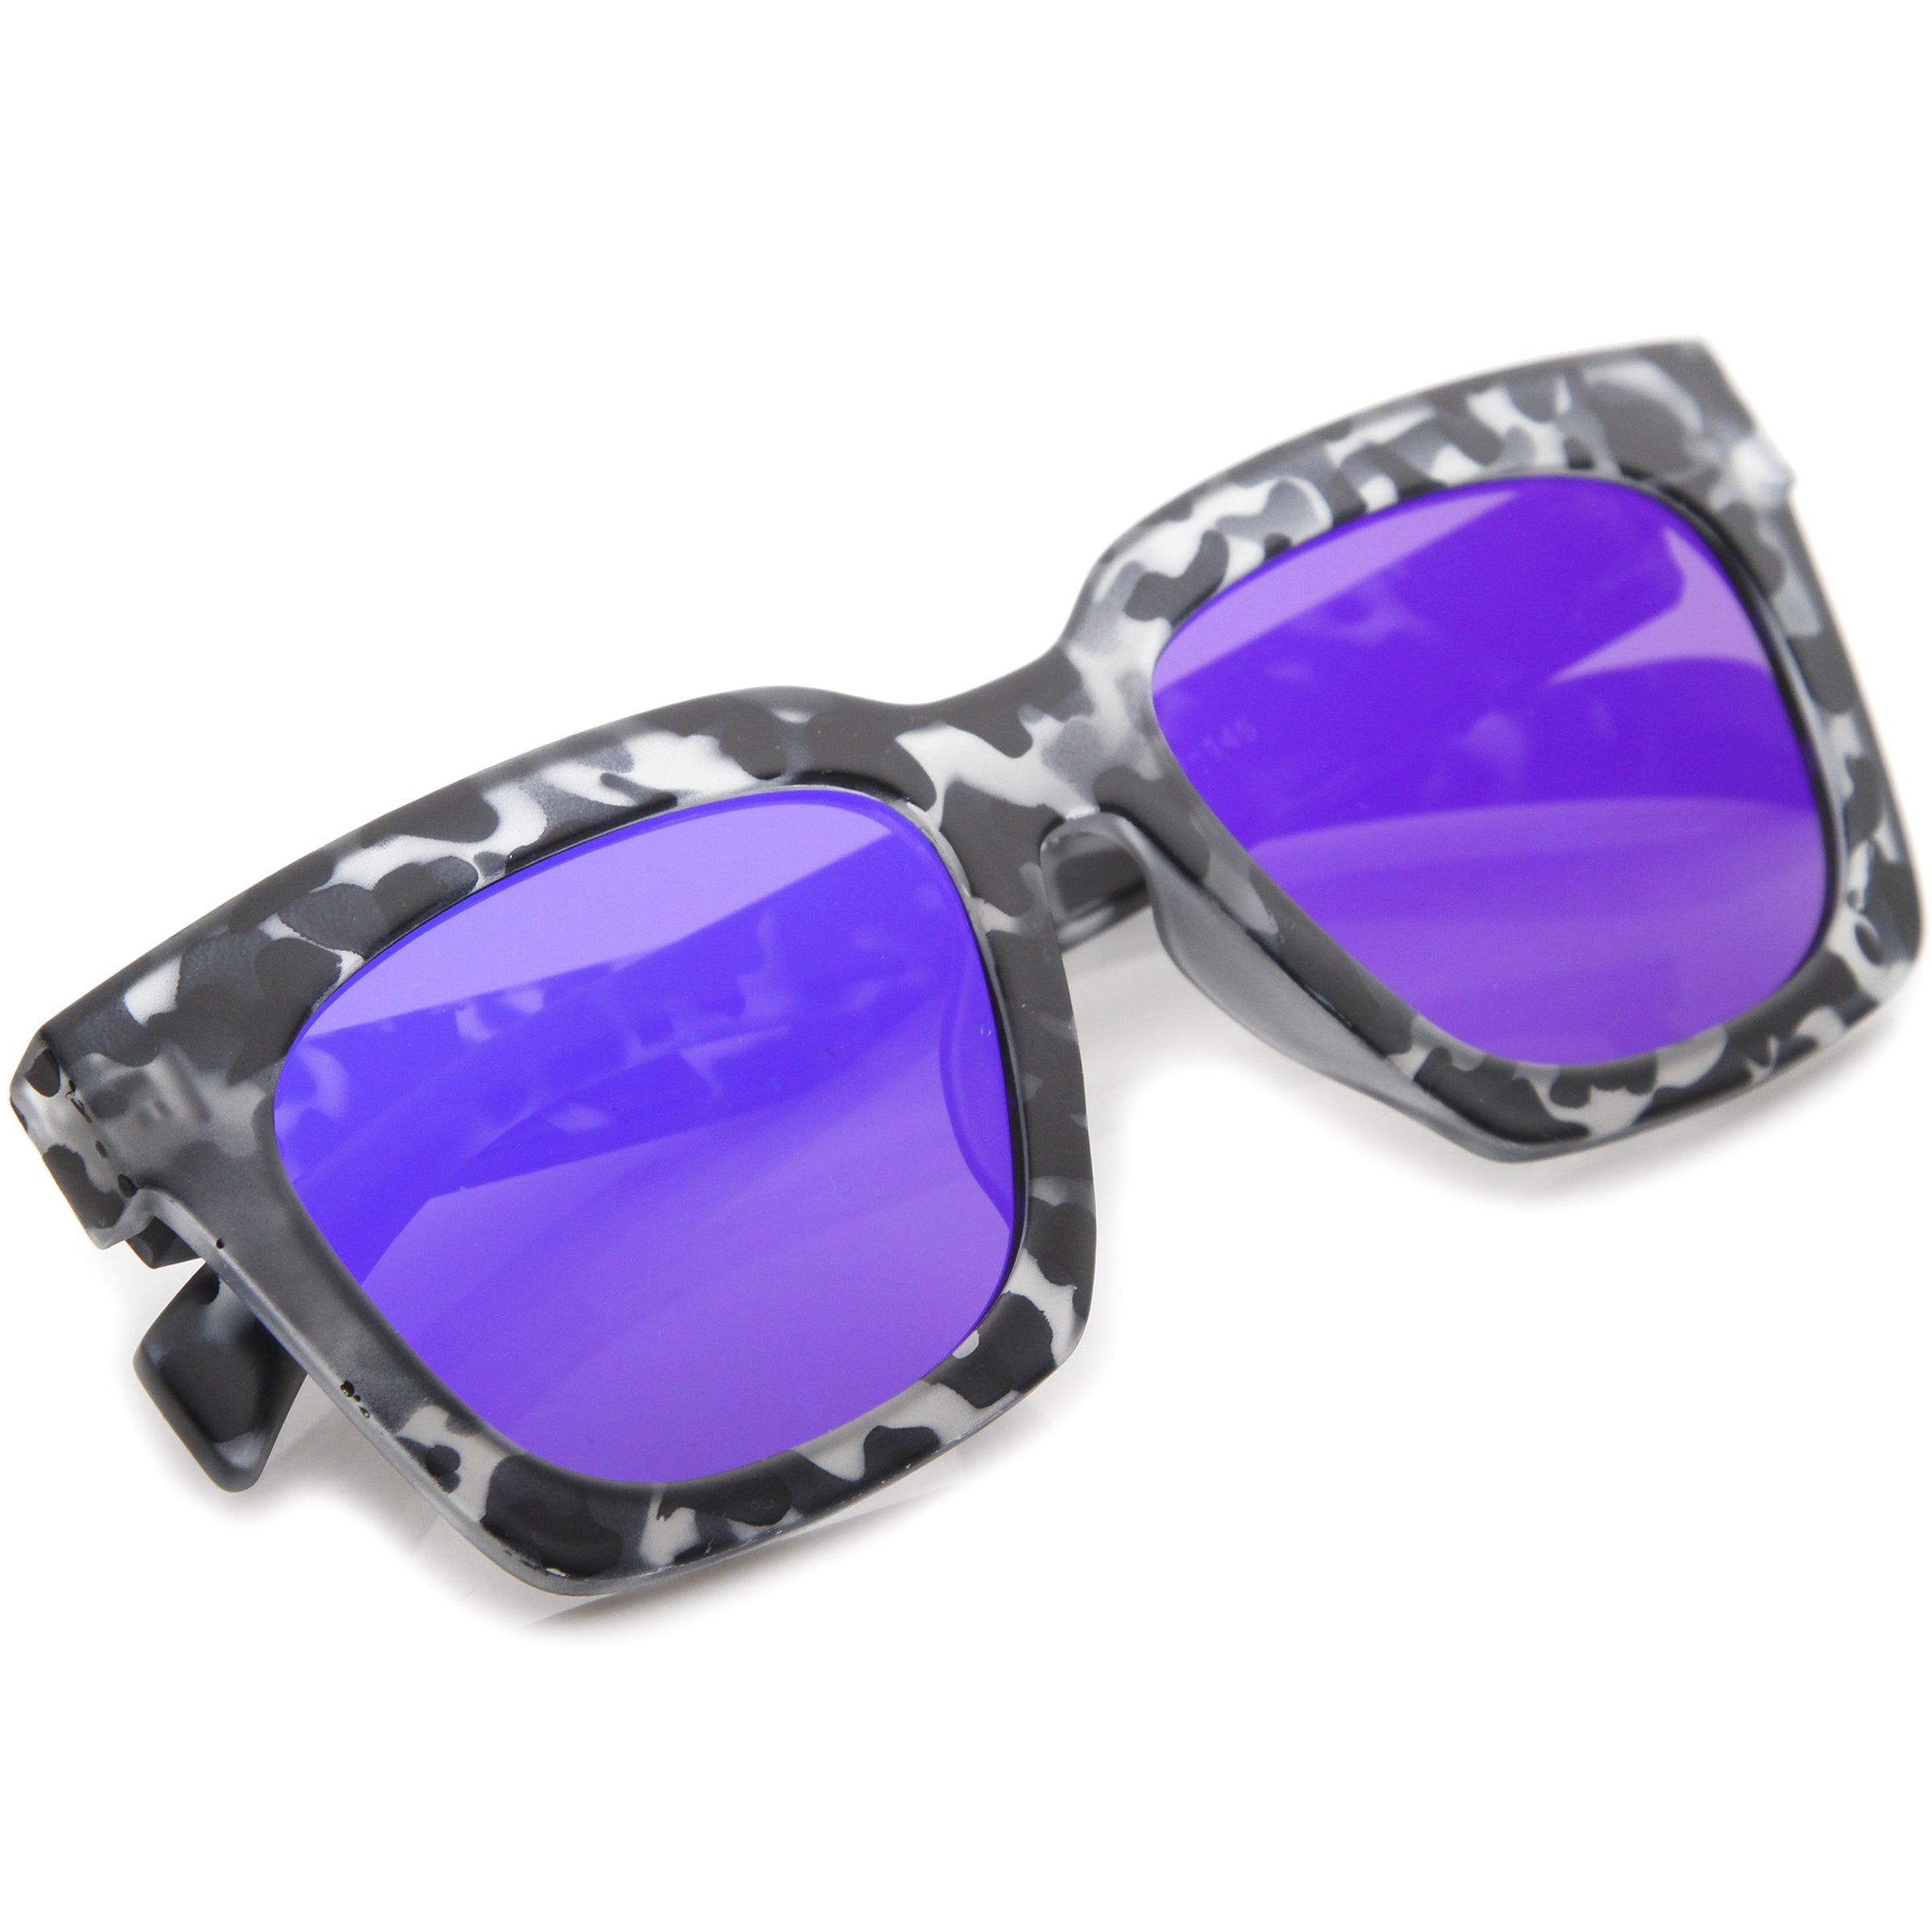 Retro Matte Horn Rimmed Colored Mirror Flat Lens Oversize Square Sunglasses 54mm - sunglass.la - 16